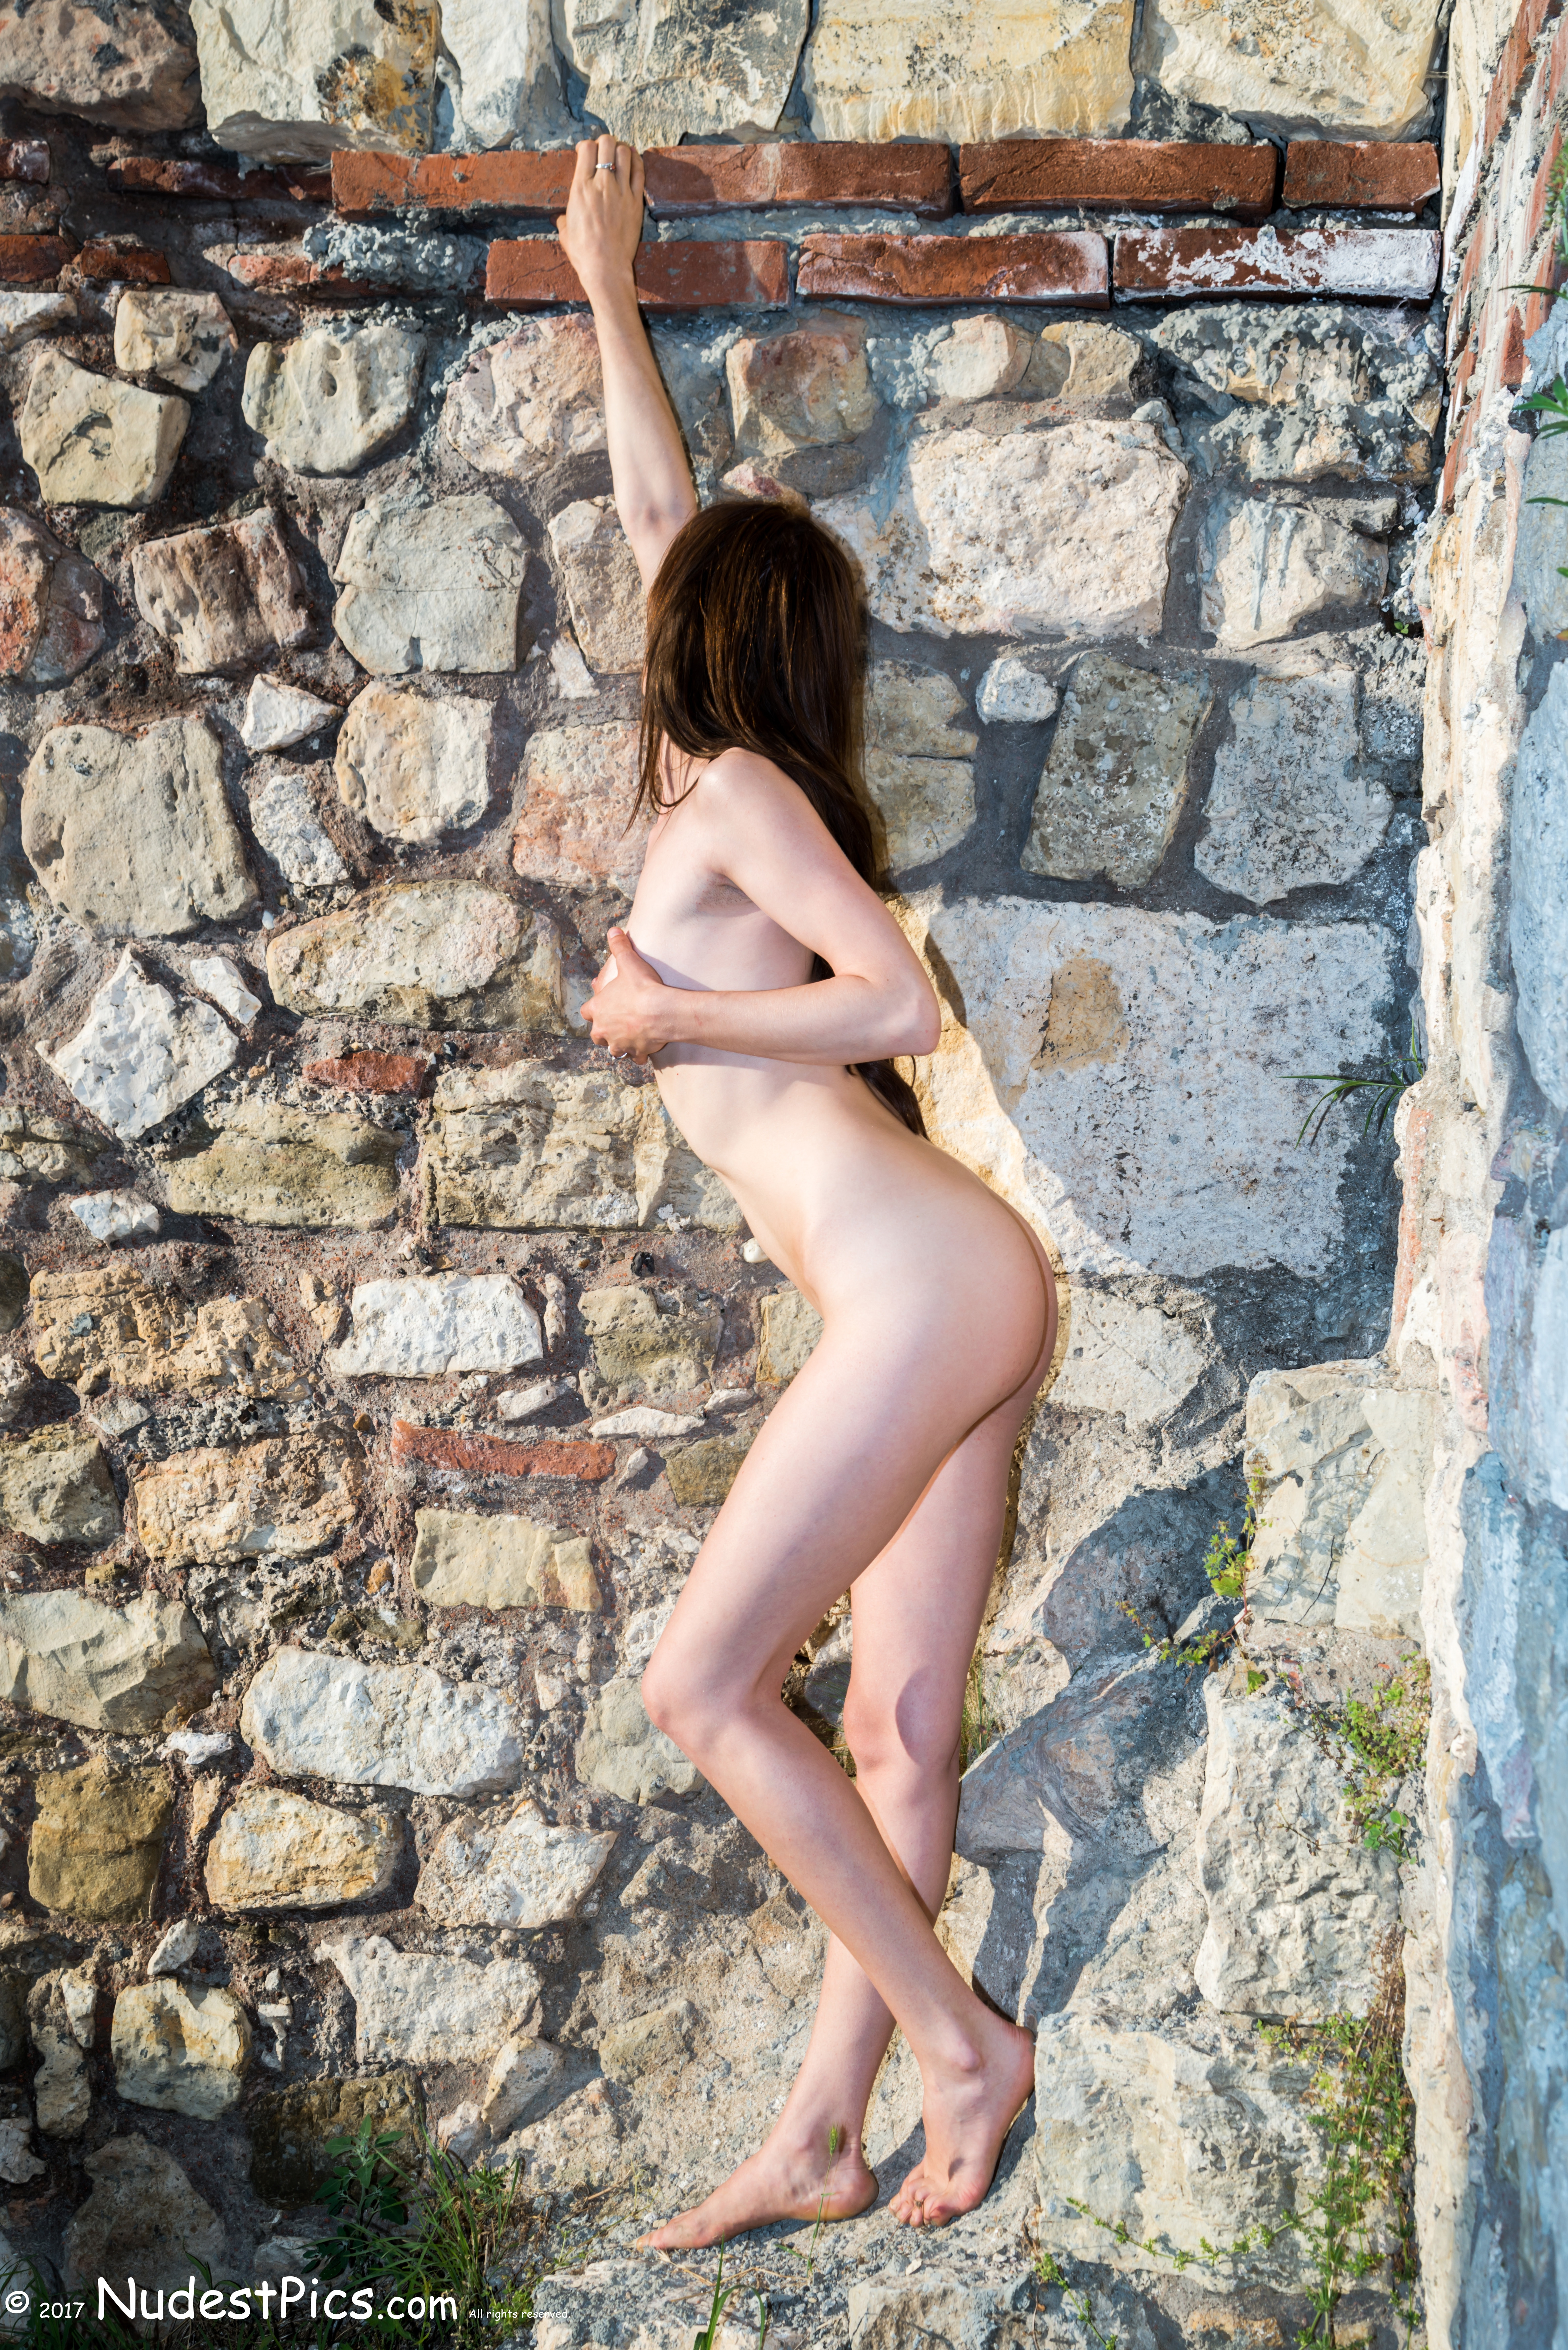 Thin Girl's Body at the Stone Wall